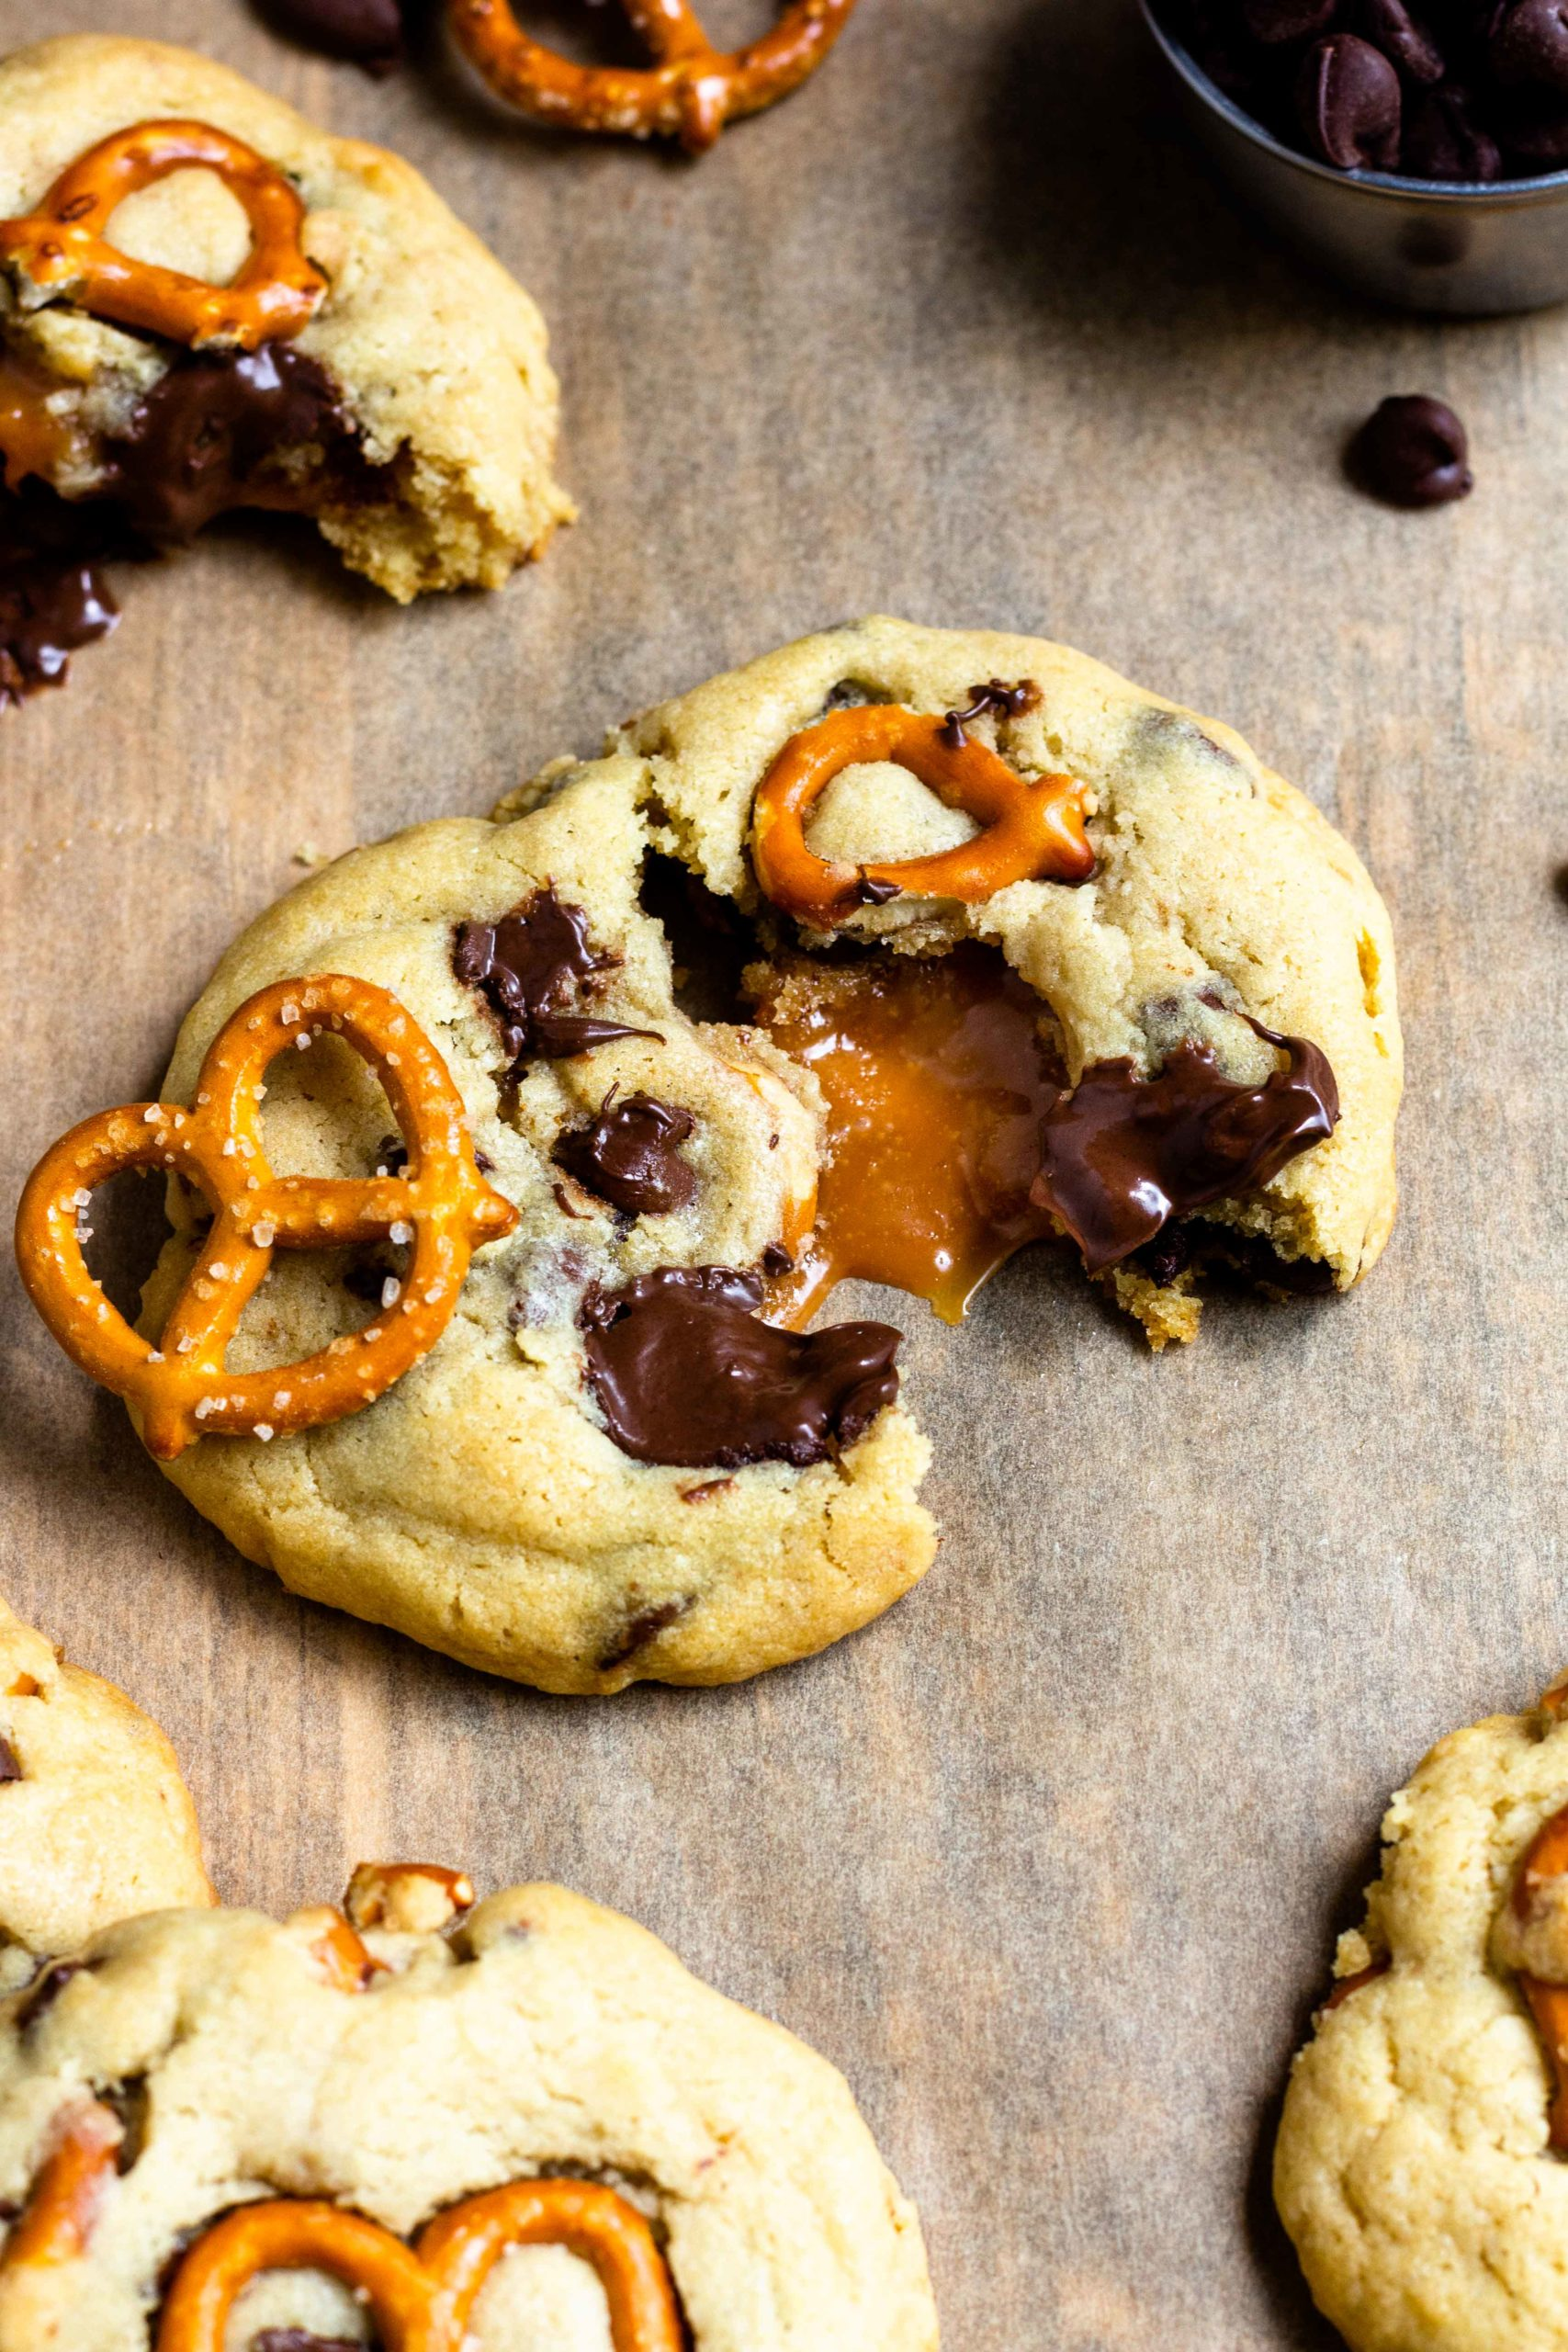 caramel filling in a pretzel chocolate chip cookie